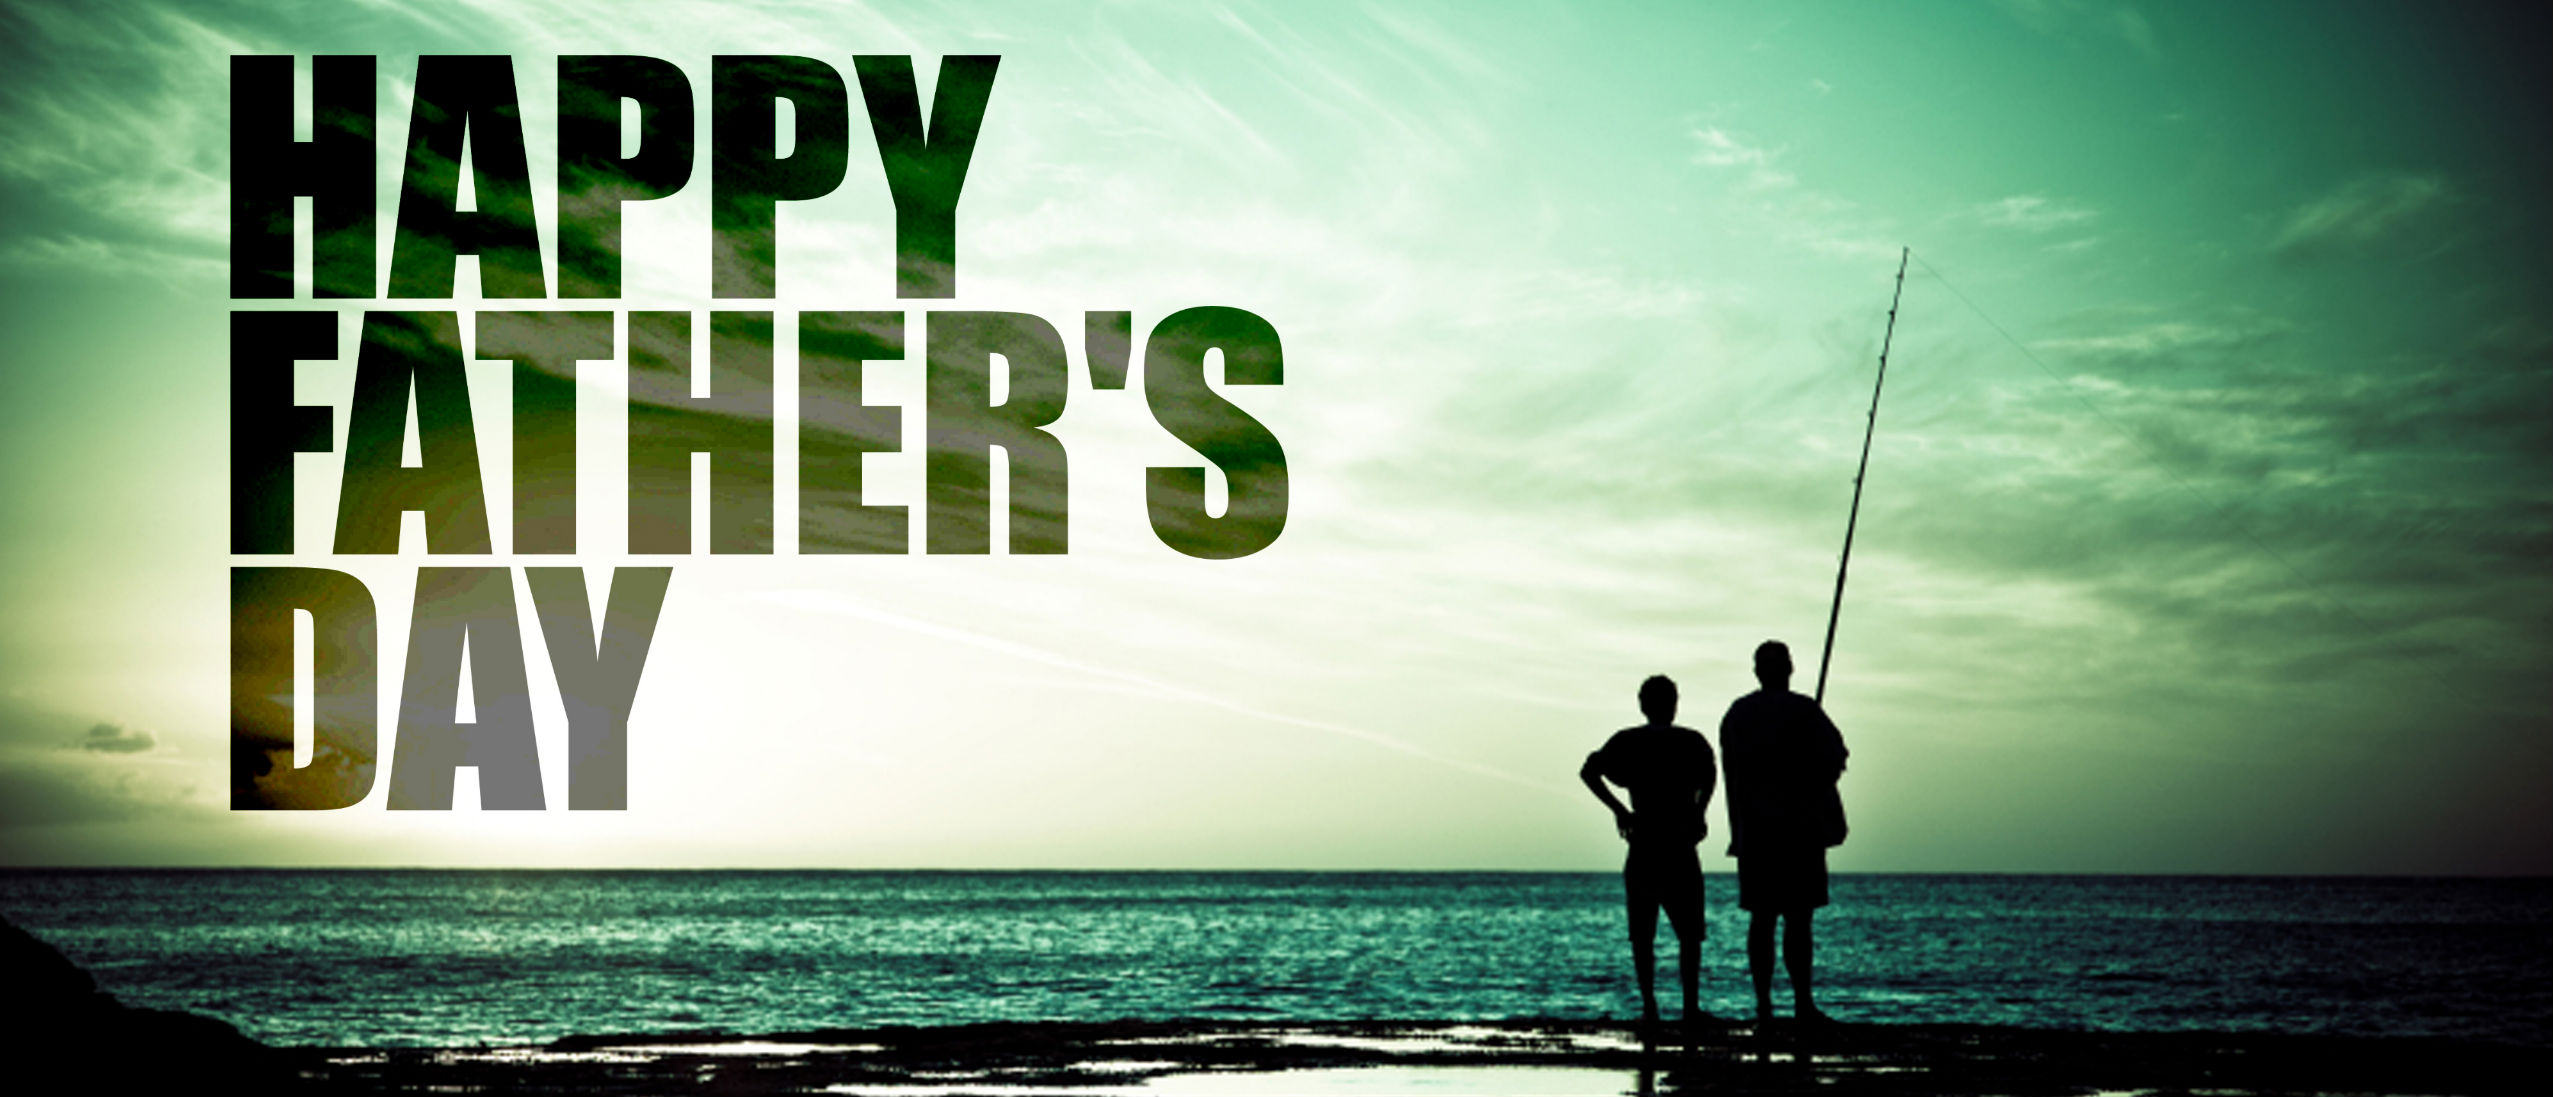 father's day images - HD4800×2699